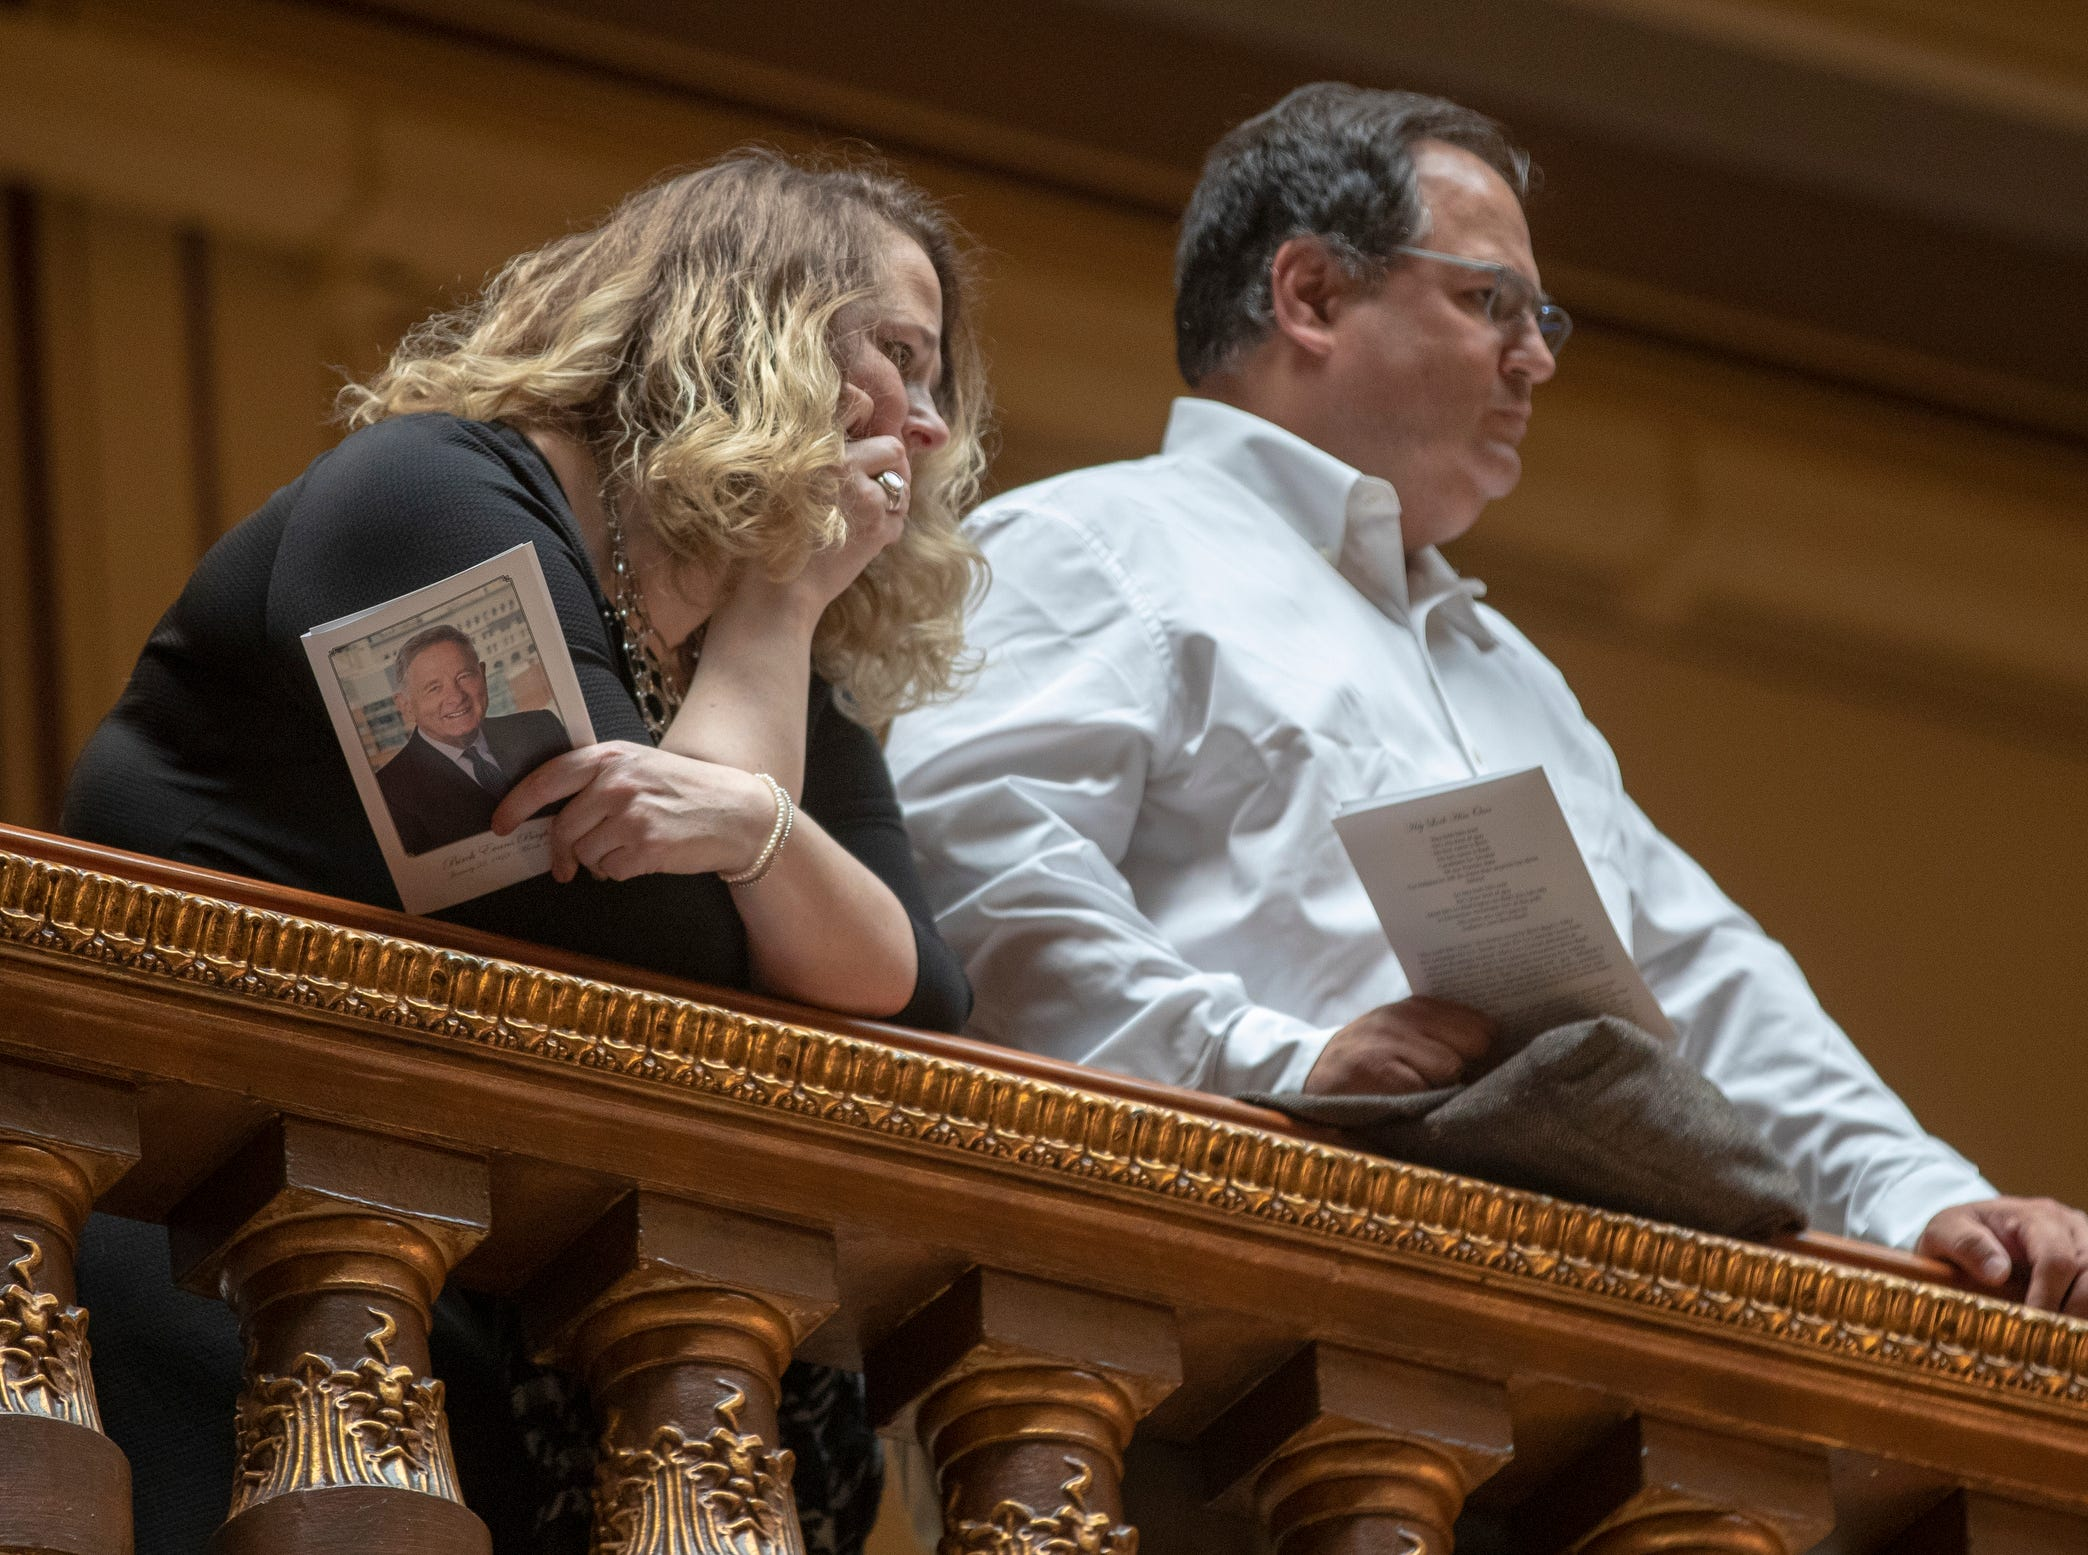 People watch a service for Indiana's Birch Bayh, who died on March 14, and was a three-term U.S. Senator, Indiana Statehouse, Indianapolis, Wednesday, May 1, 2019.